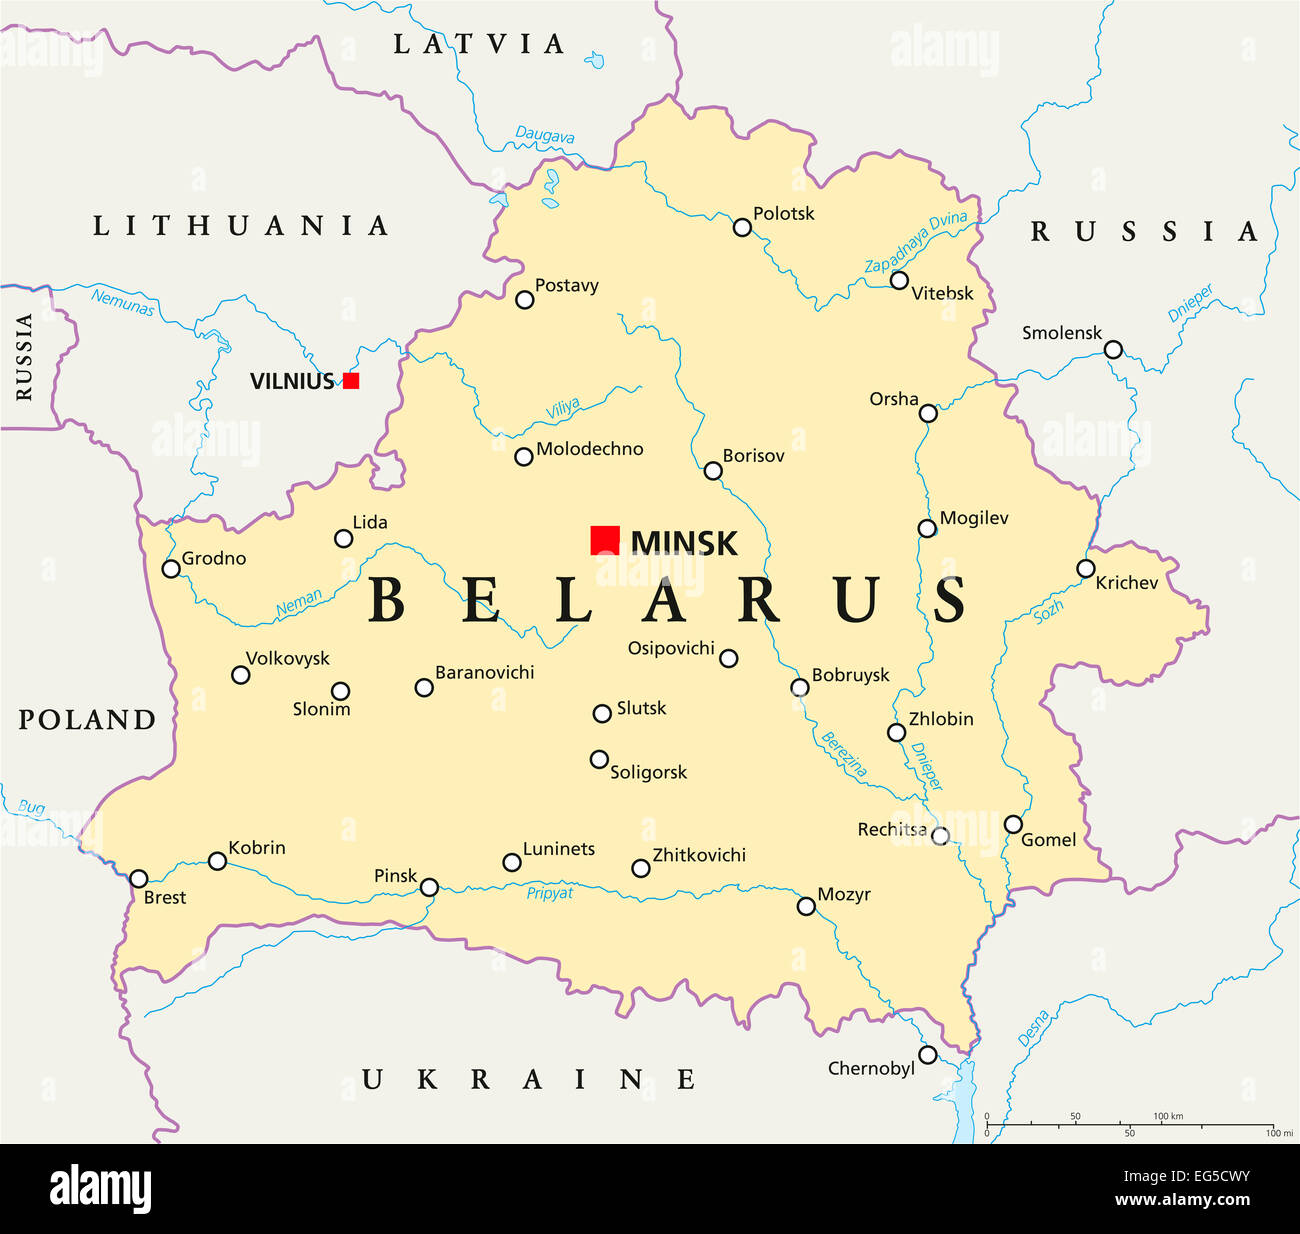 Belarus Political Map with capital Minsk, national borders